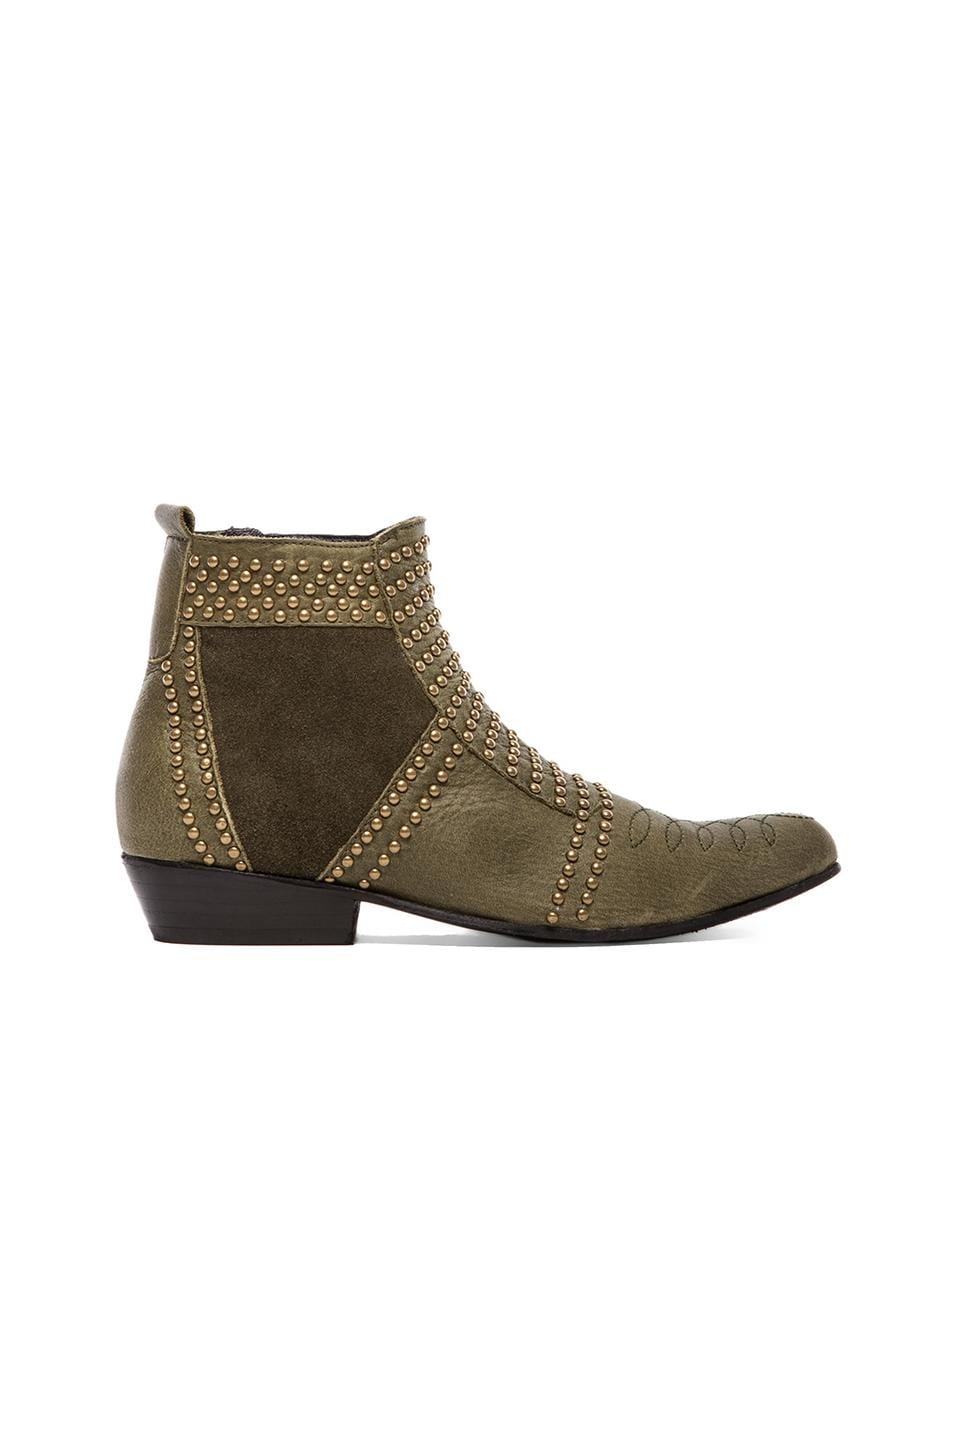 ANINE BING Studded Boots in Olive